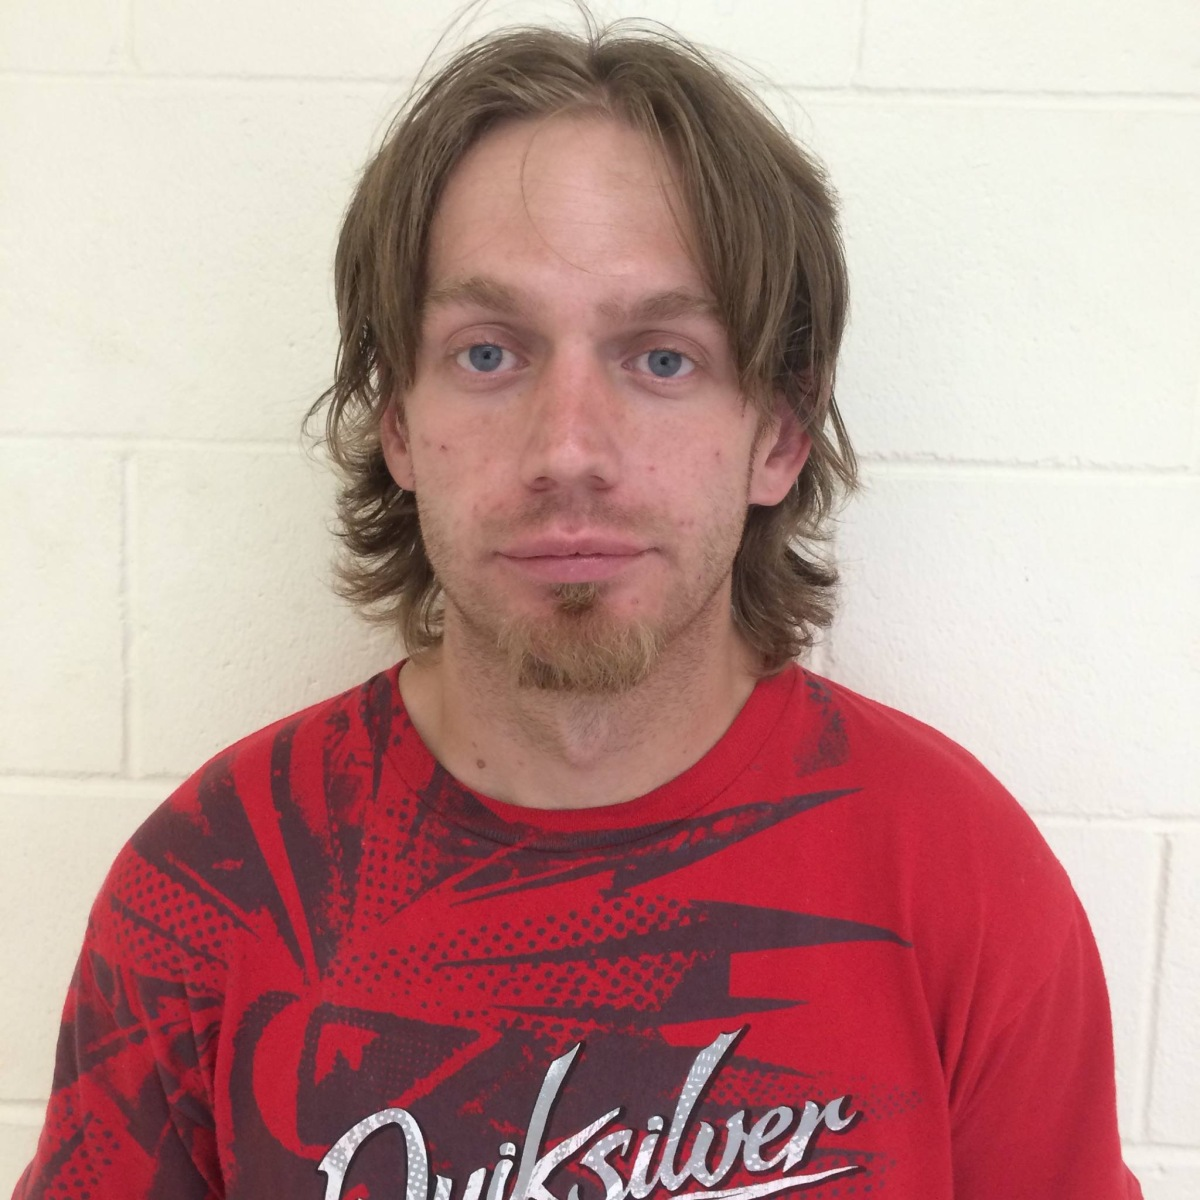 Arrested For Possession Of Methamphetamine And Stealing